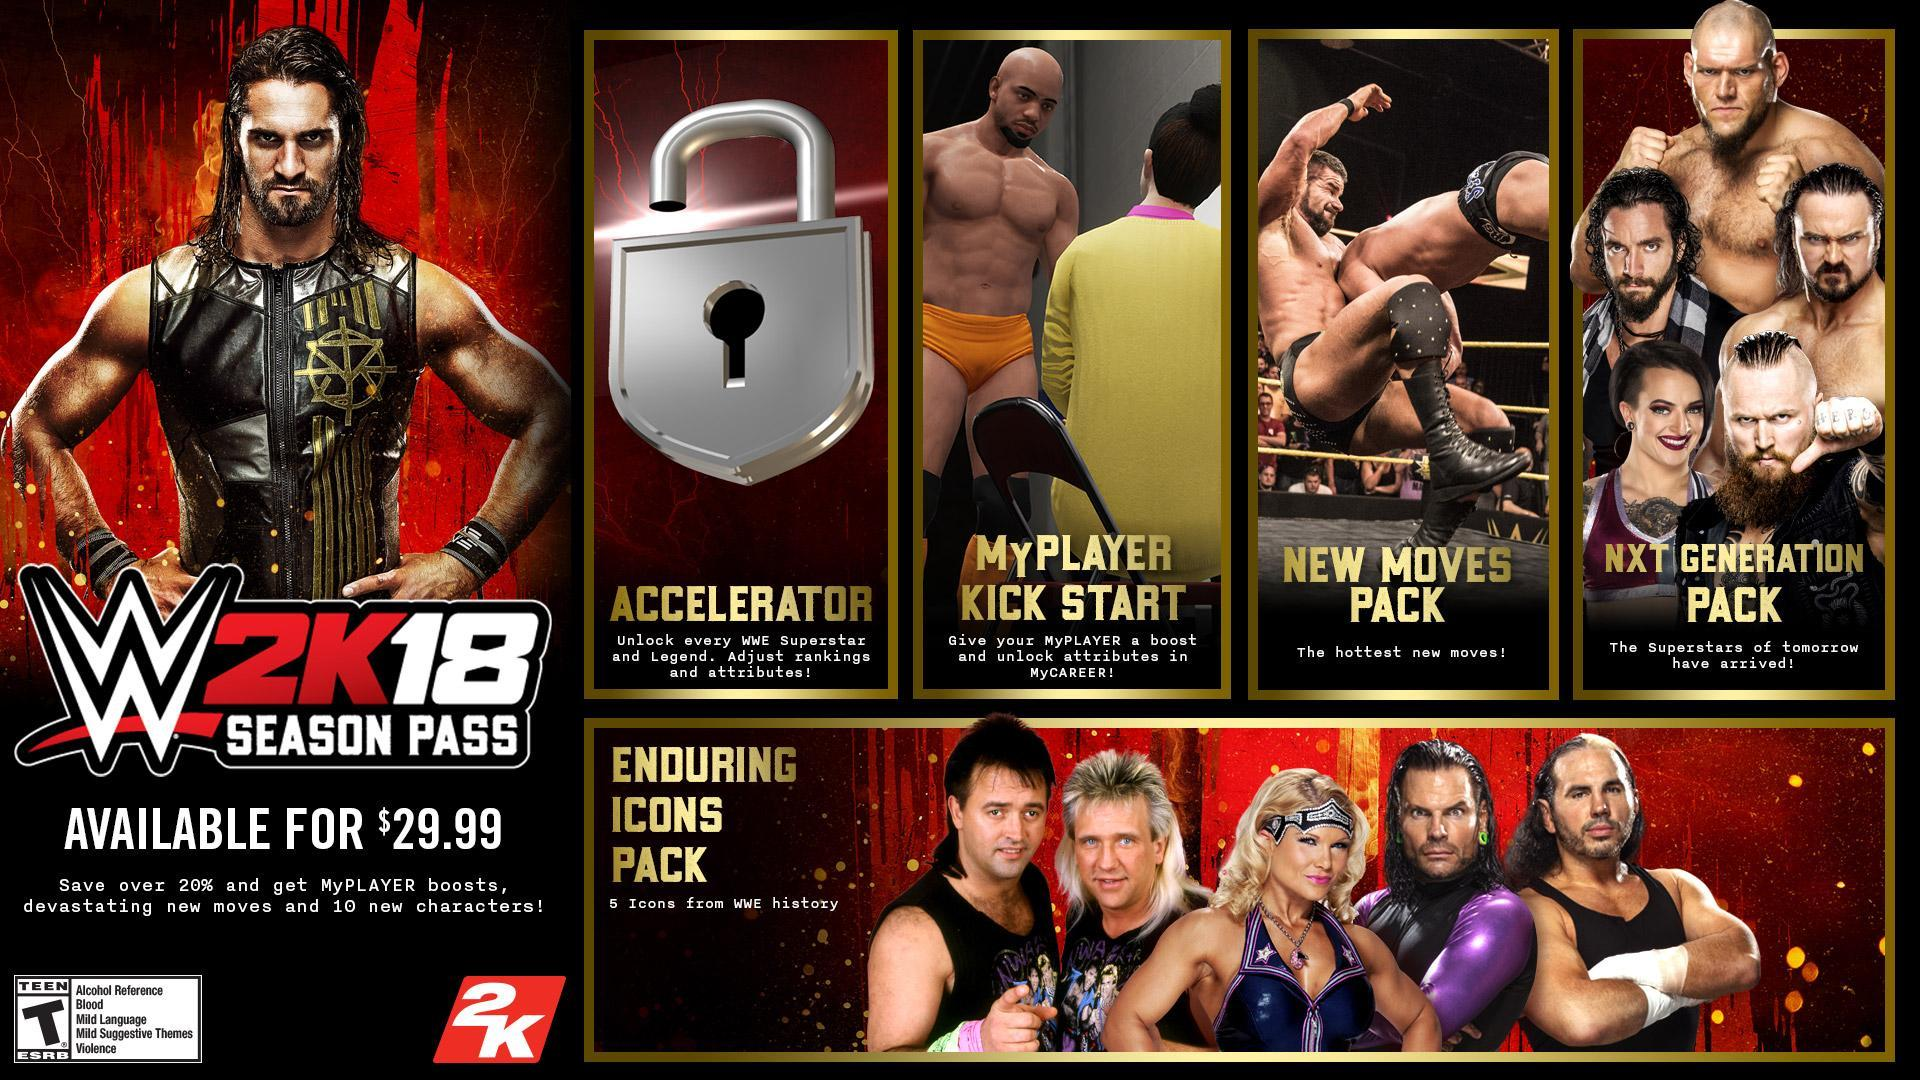 images/wwe2k18/WWE-2K18-all-dlc-season-pass-infographic-details.jpg